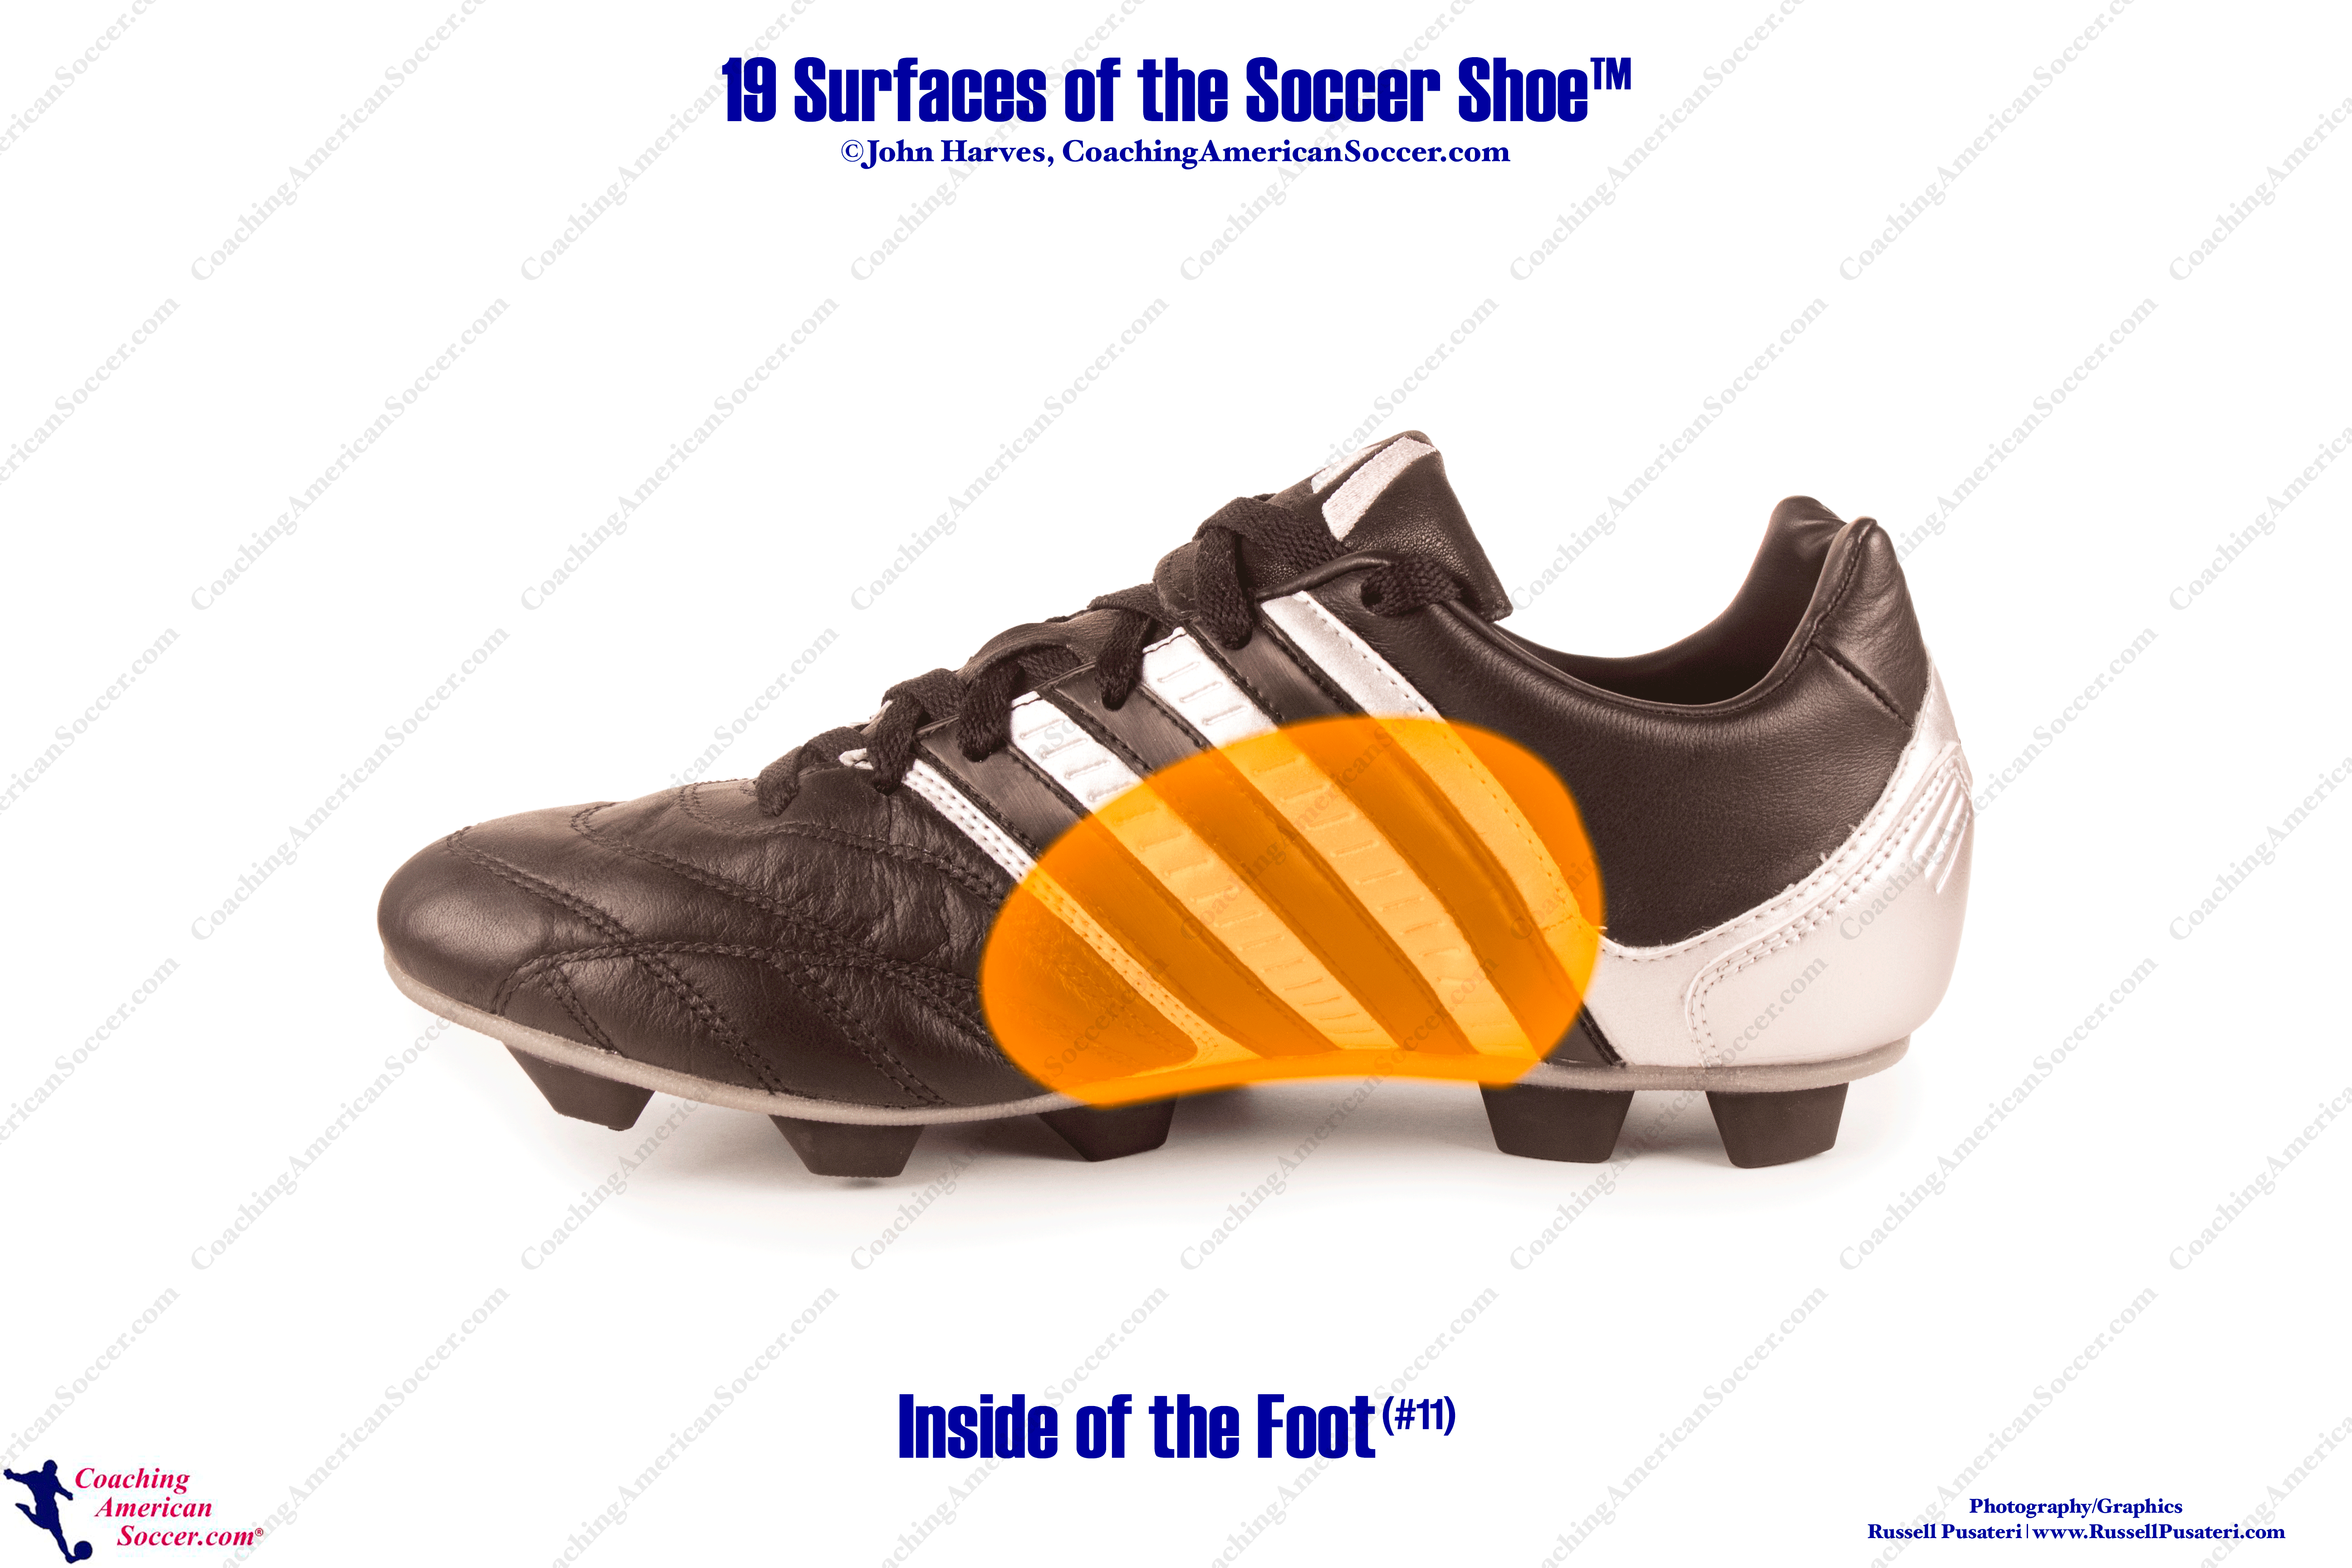 Soccer Passing - The Inside of the Foot or \